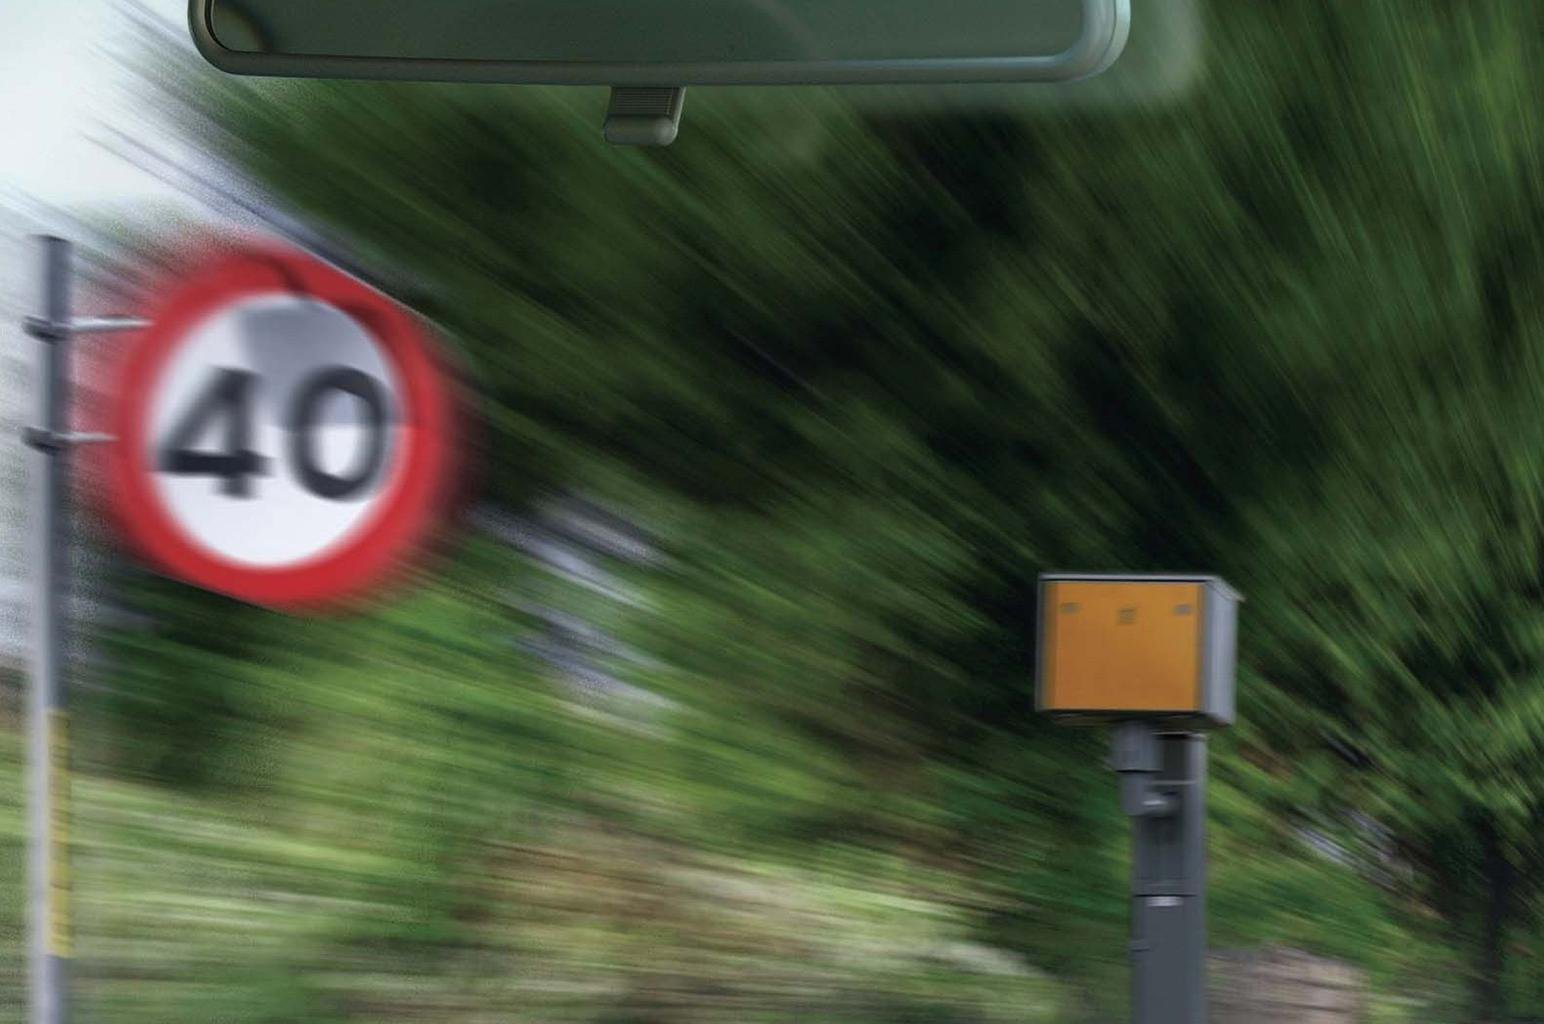 Drivers who kill could be sentenced to life in prison